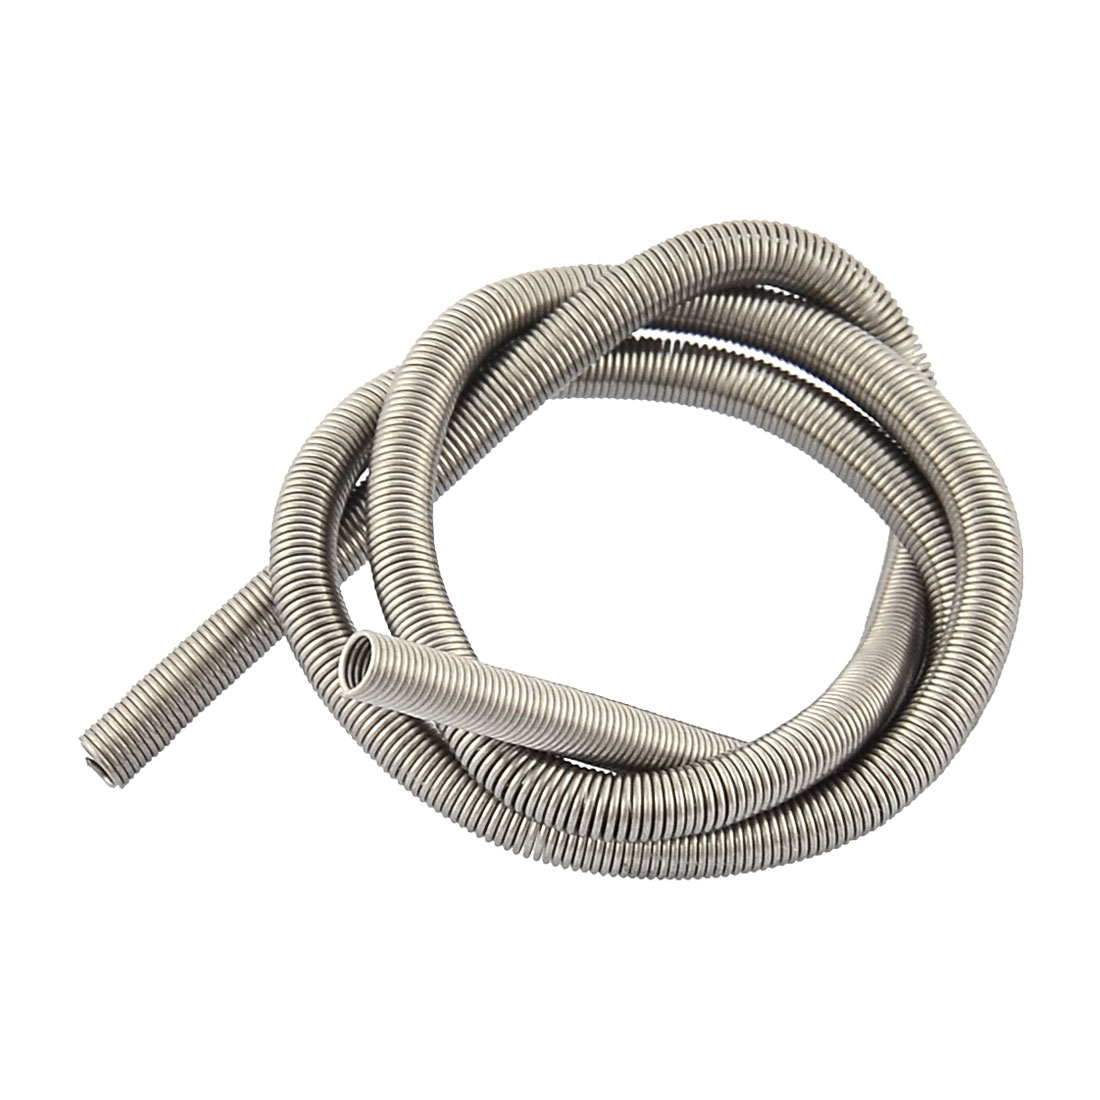 800W Kilns Furnaces Metal Heating Element Coil 35.5cm Long Silver Tone